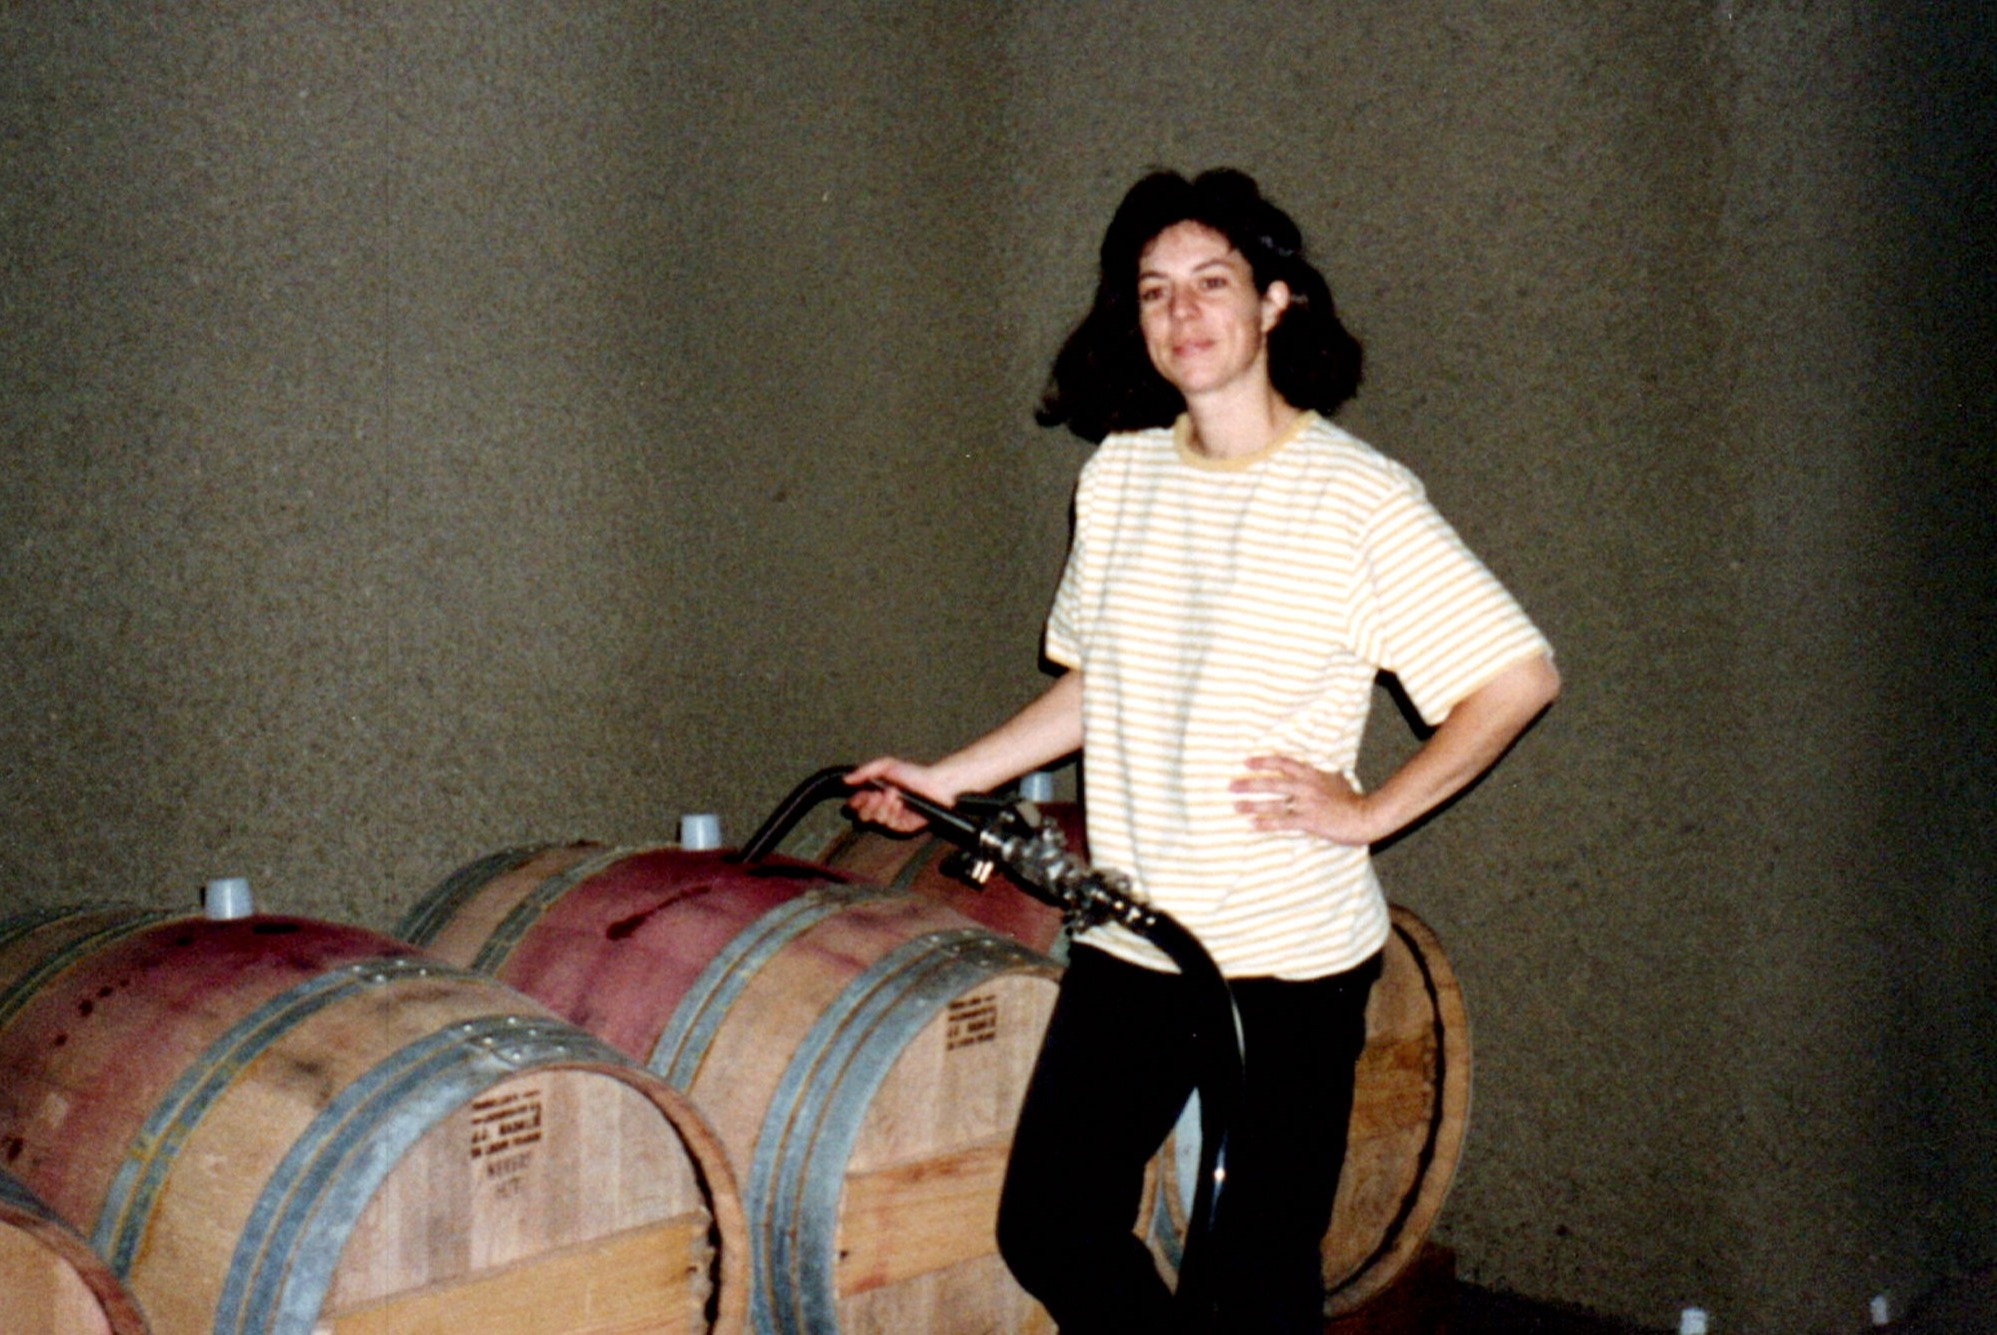 Françoise Peschon working in the Araujo Estate cellar at Eisele Vineyard. (1994)